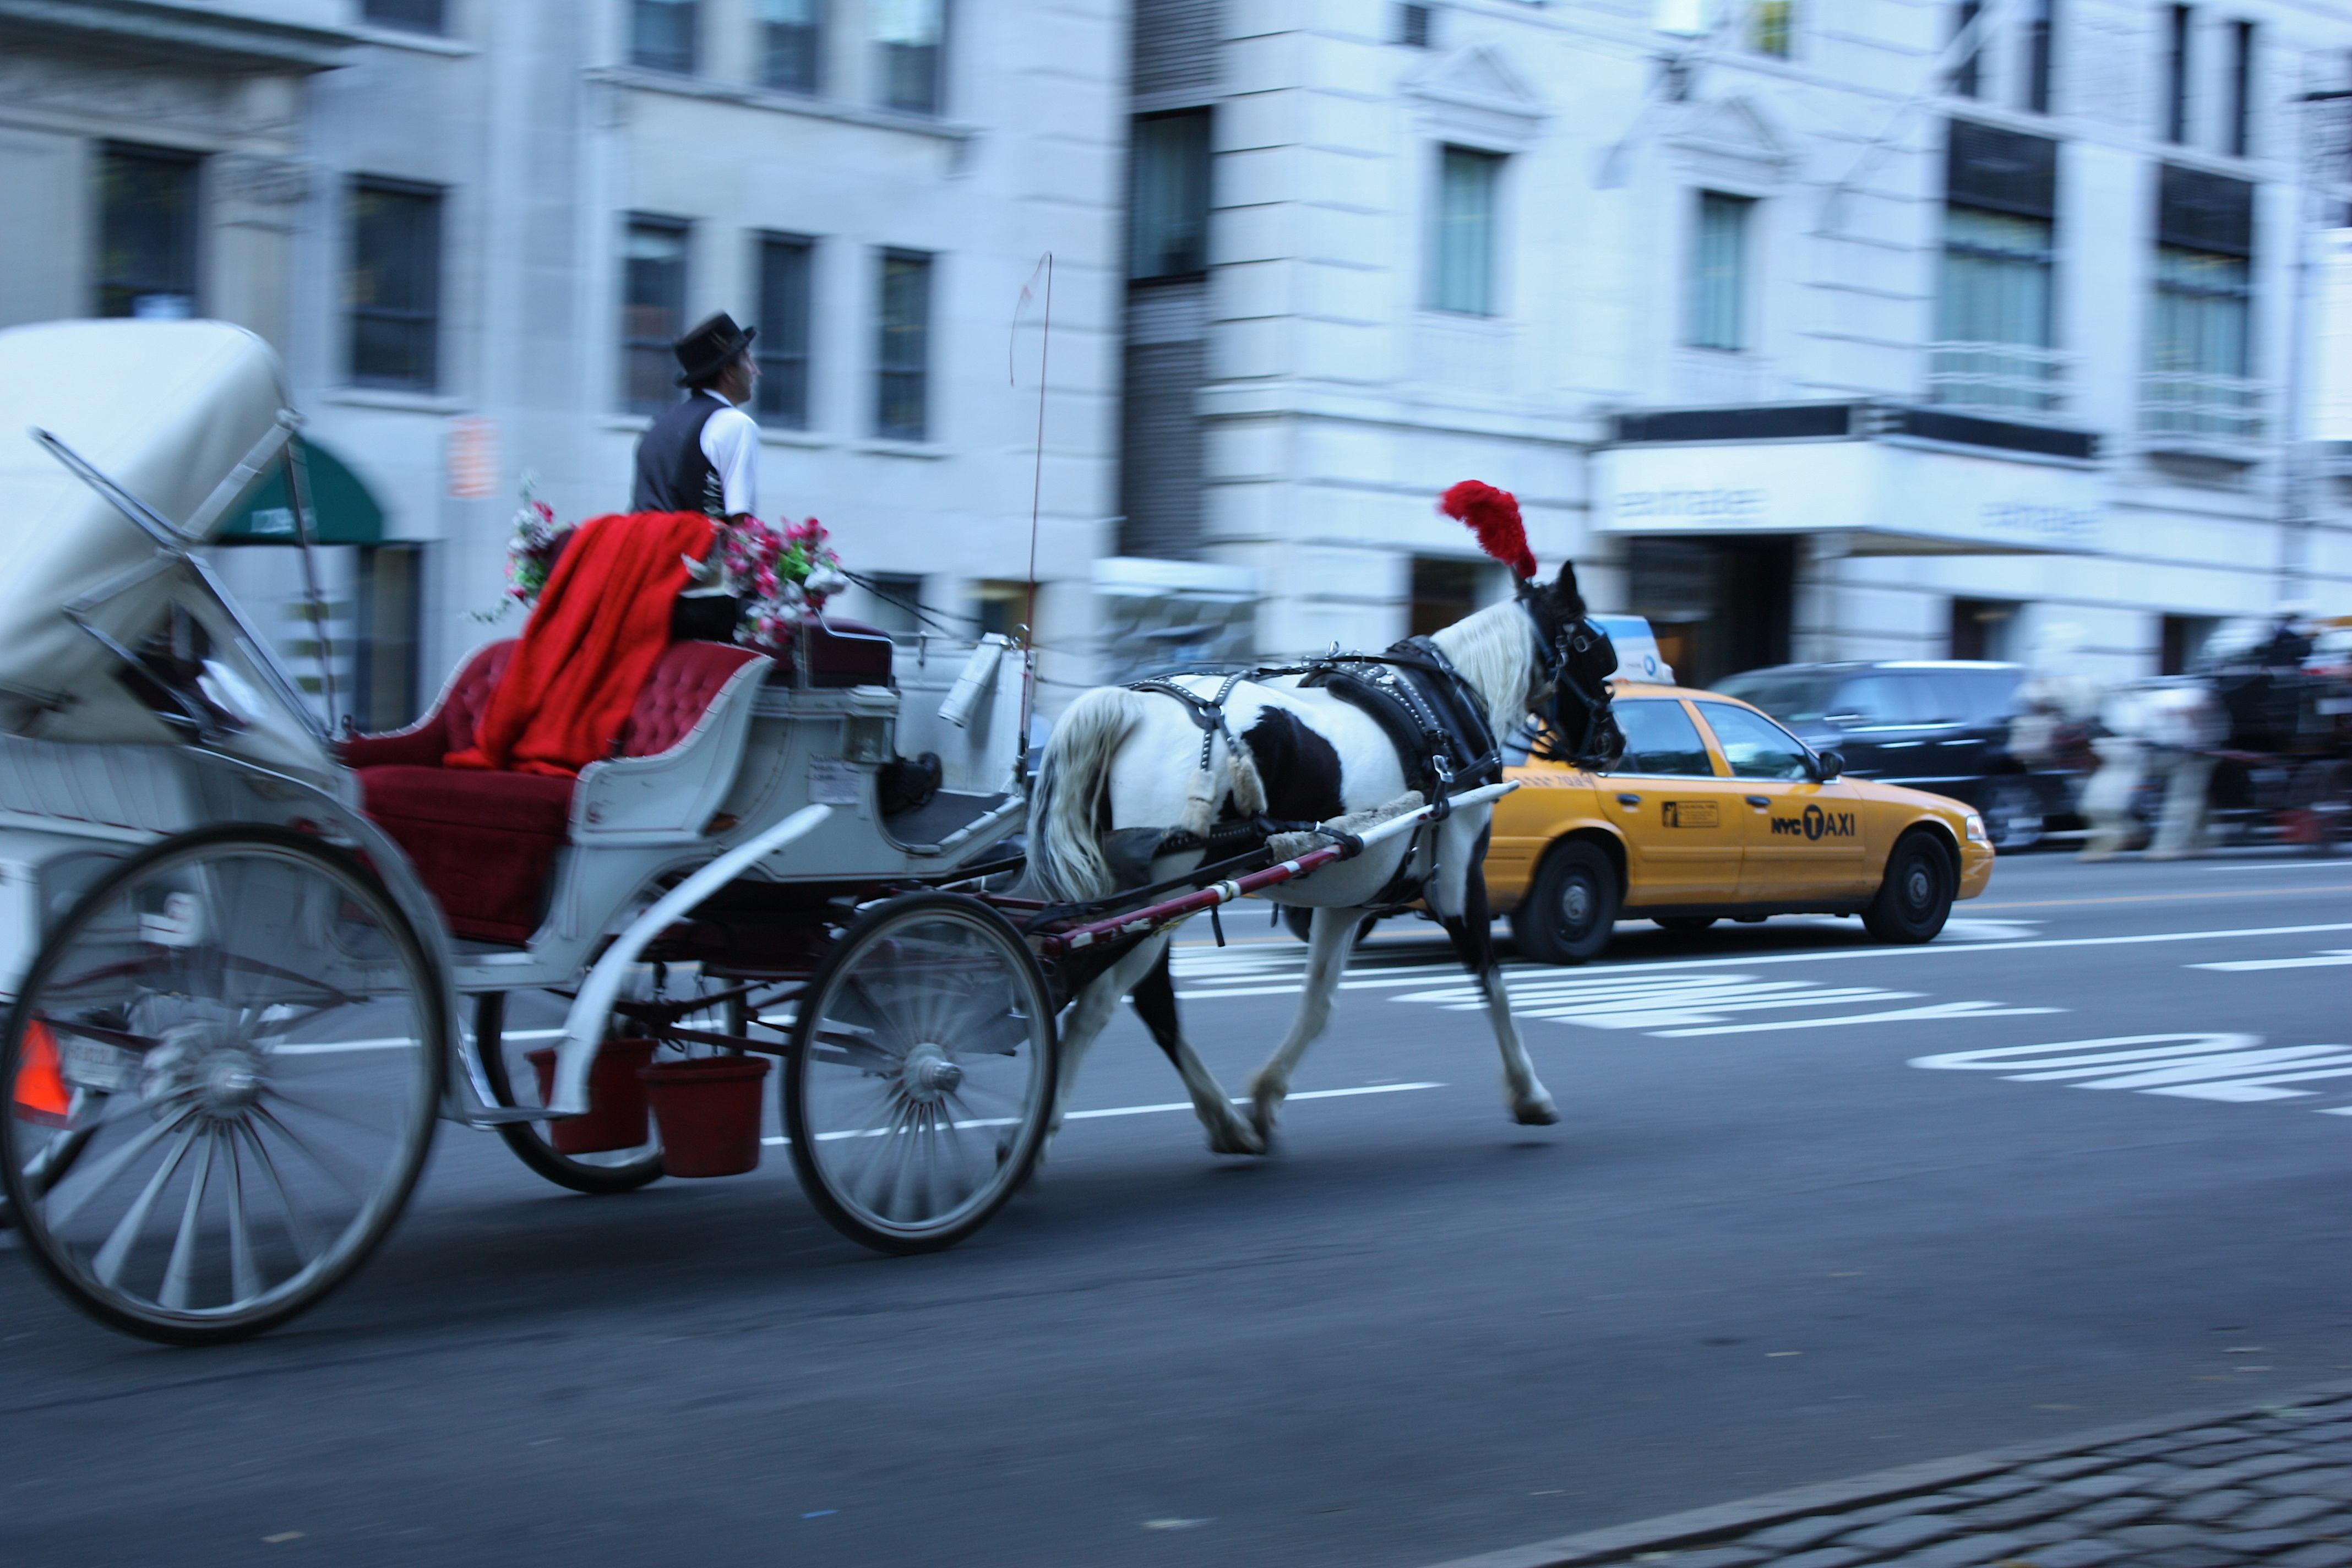 Horse and carriage amid 57th Street traffic